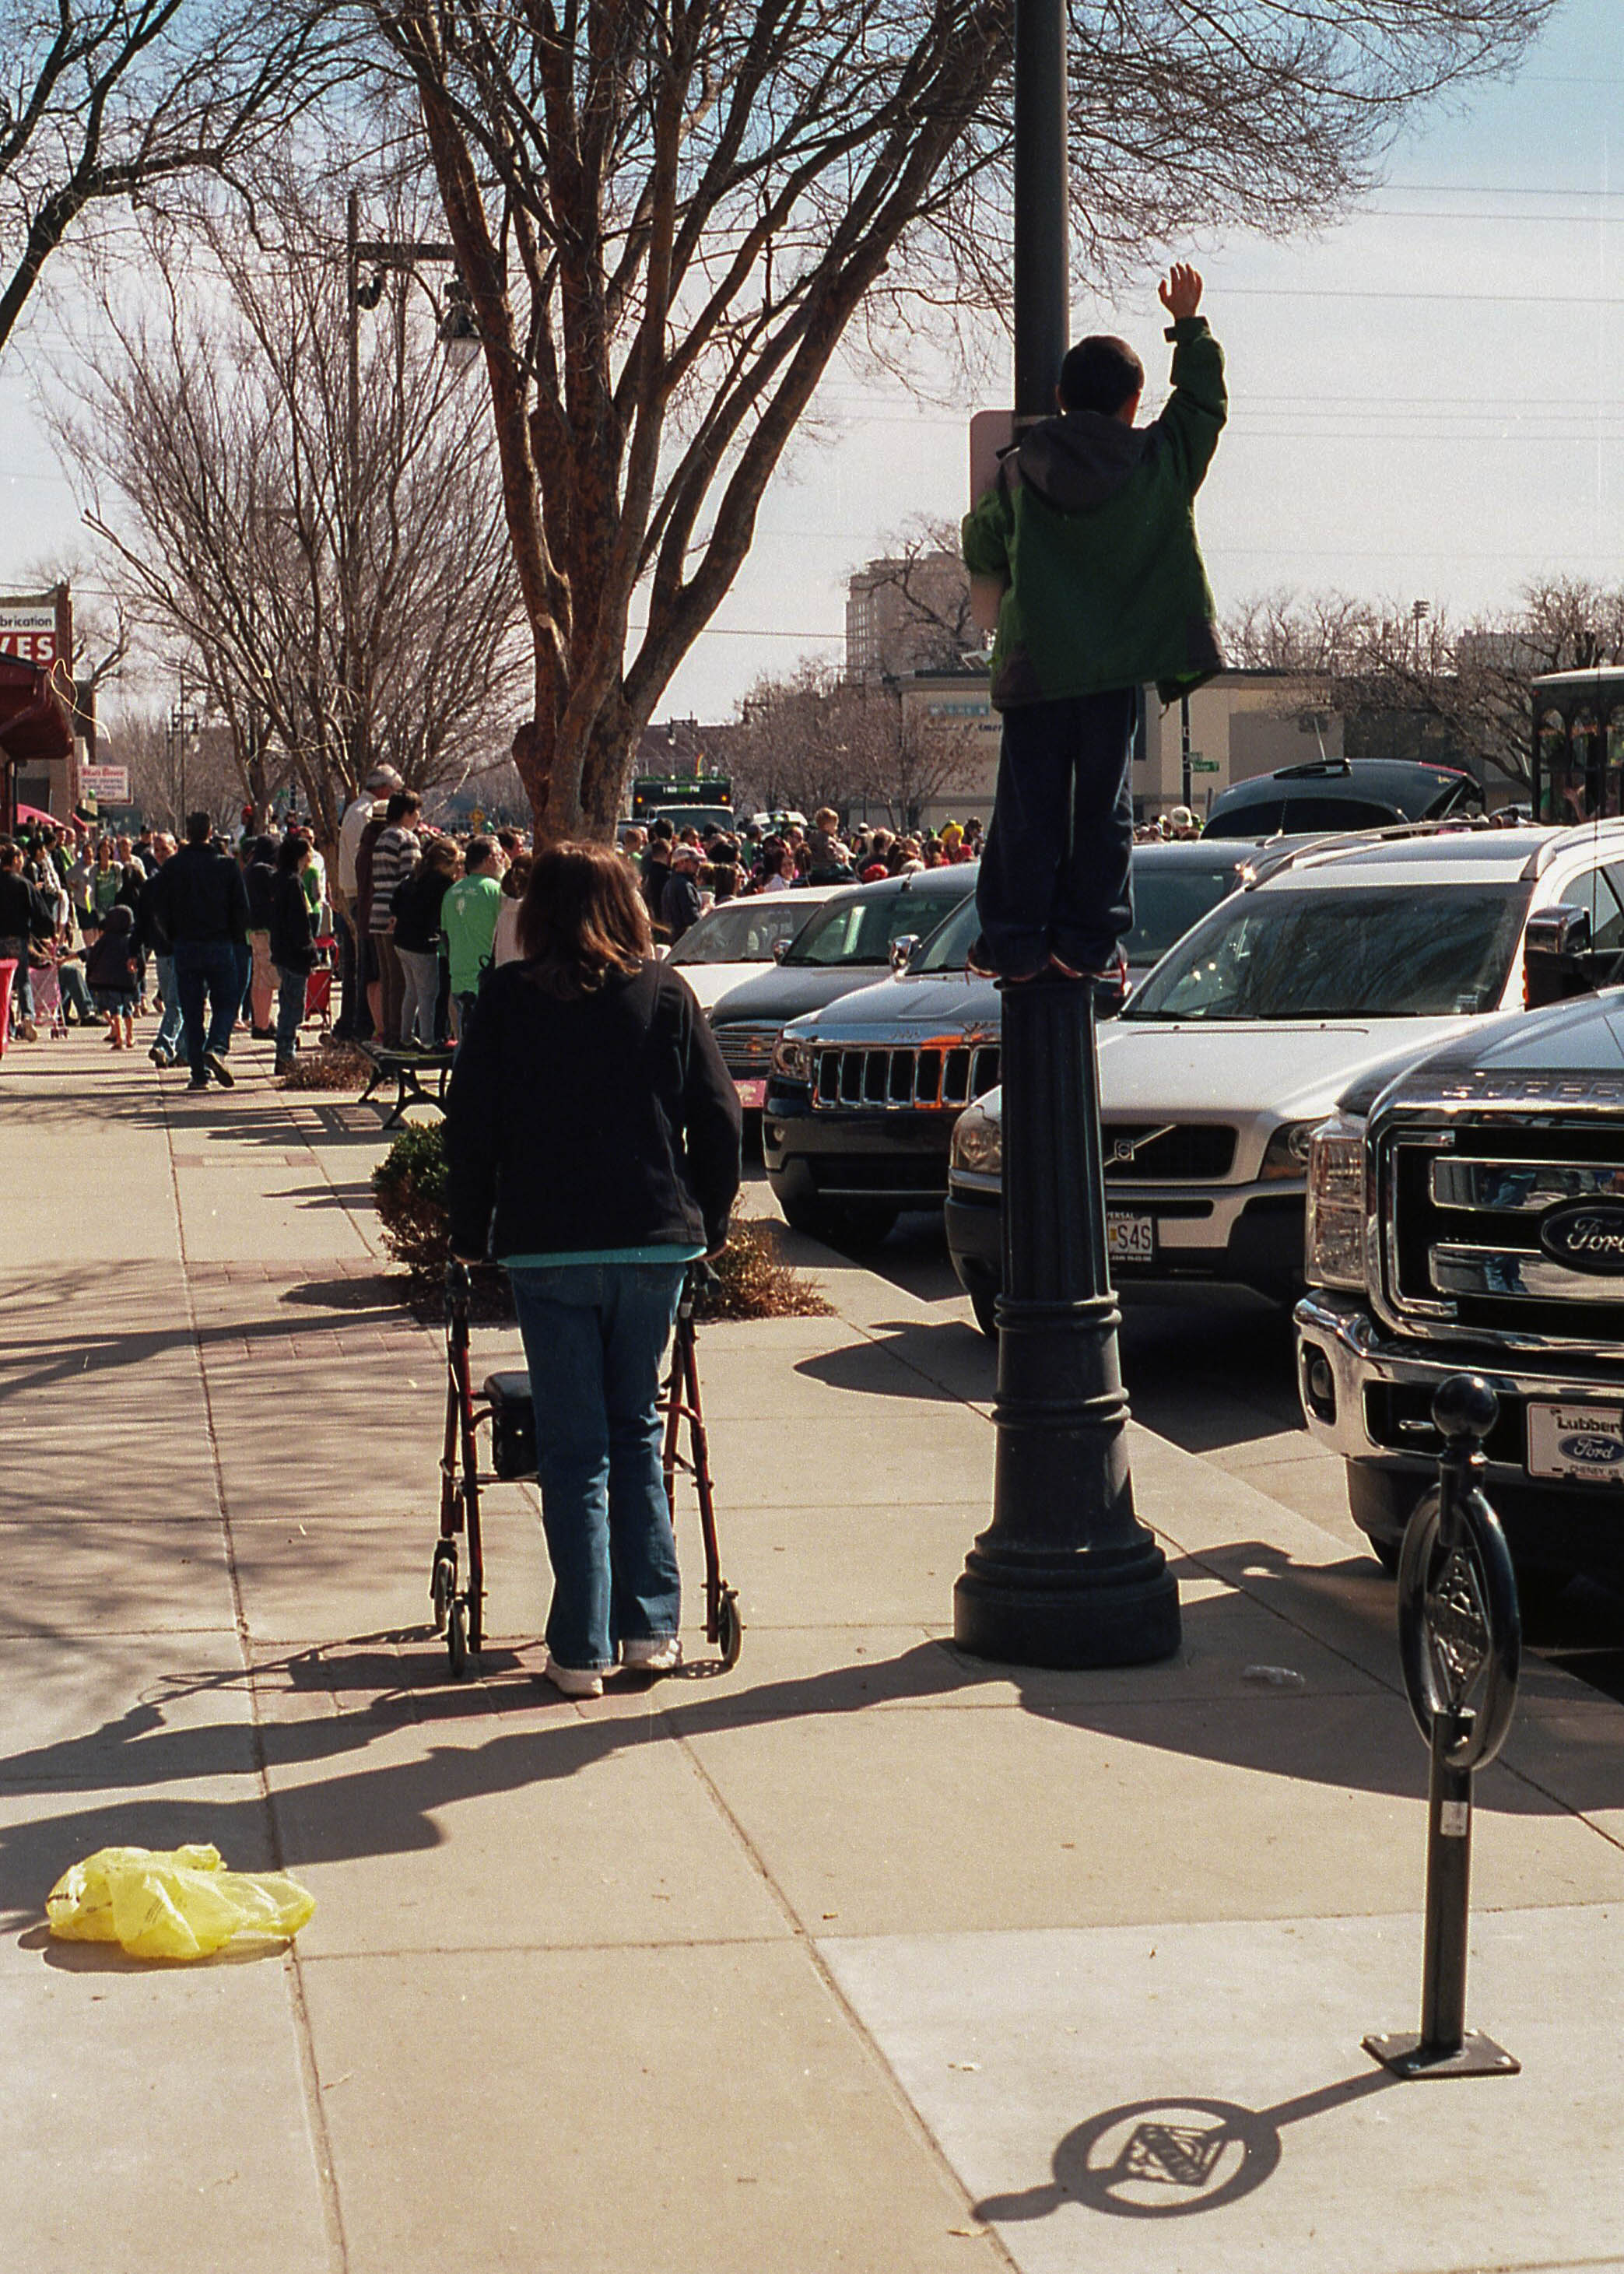 Trying to get a view of the parade by any means necessary.